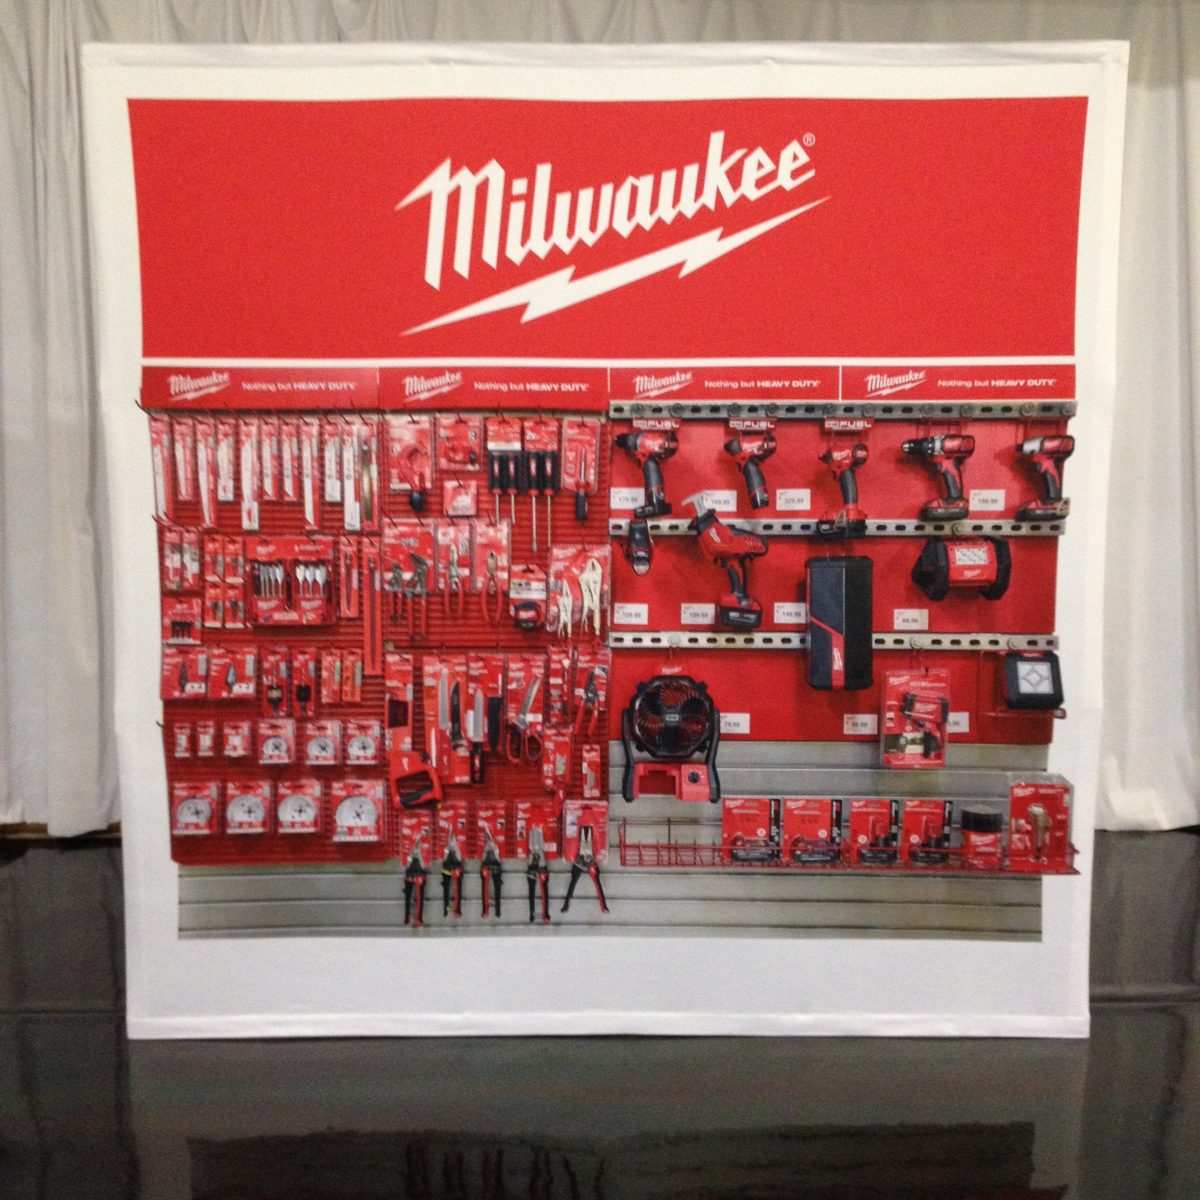 13) Tension Fabric Displays